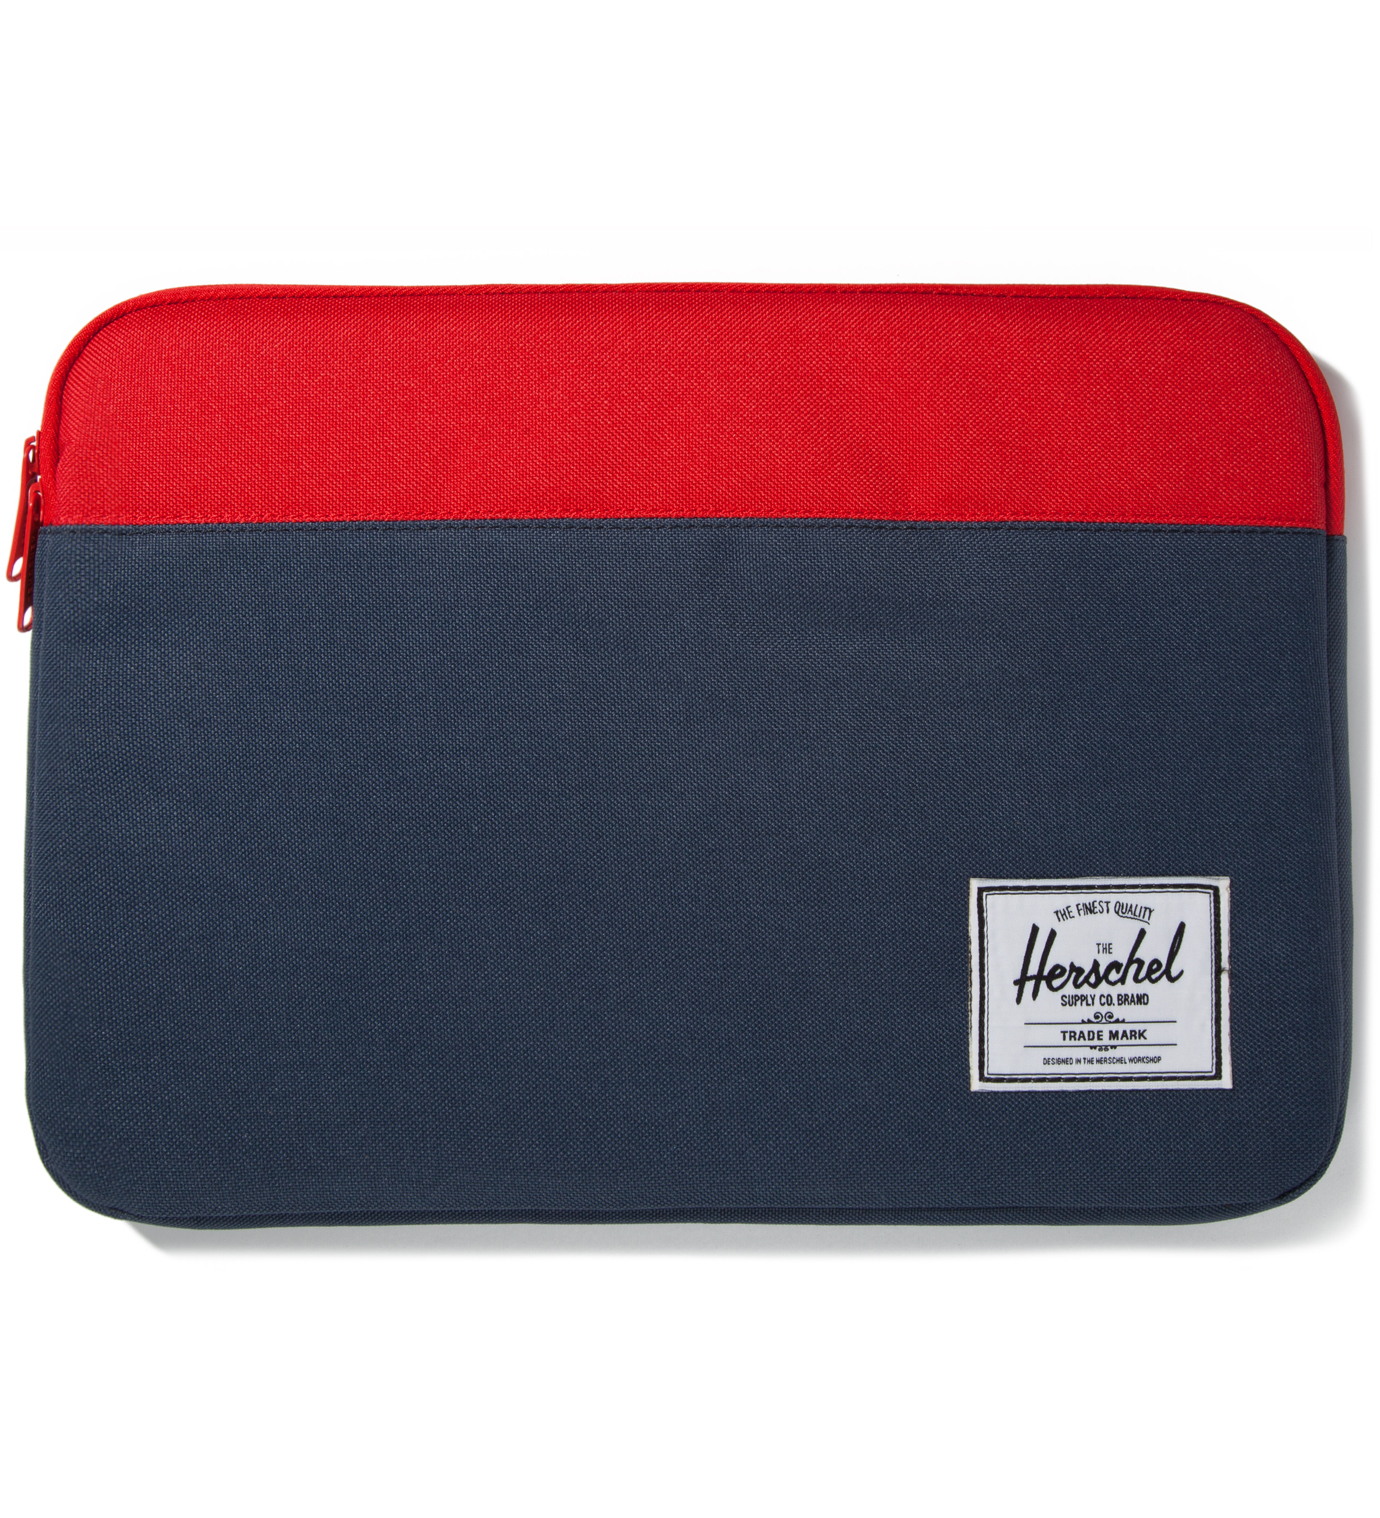 "Herschel Supply Co. Red/Navy Anchor Sleeve for 13"" Macbook Pro"